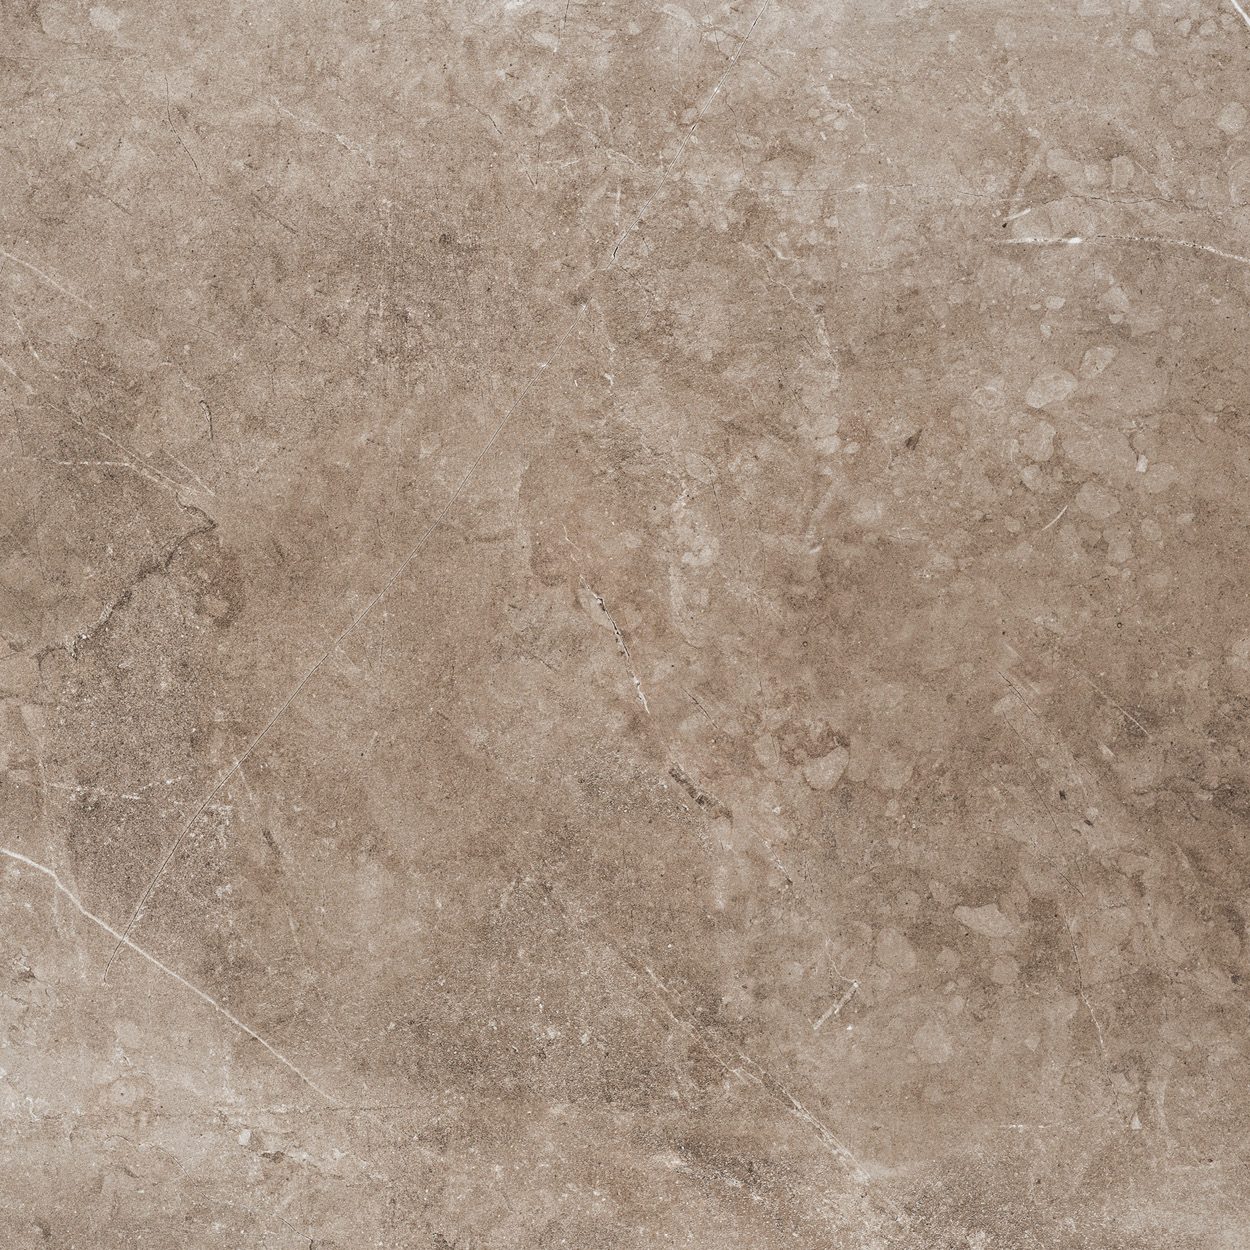 16 X 32 Evo Stone Dune Honed finished Rectified Porcelain Tile (SPECIAL ORDER ONLY)